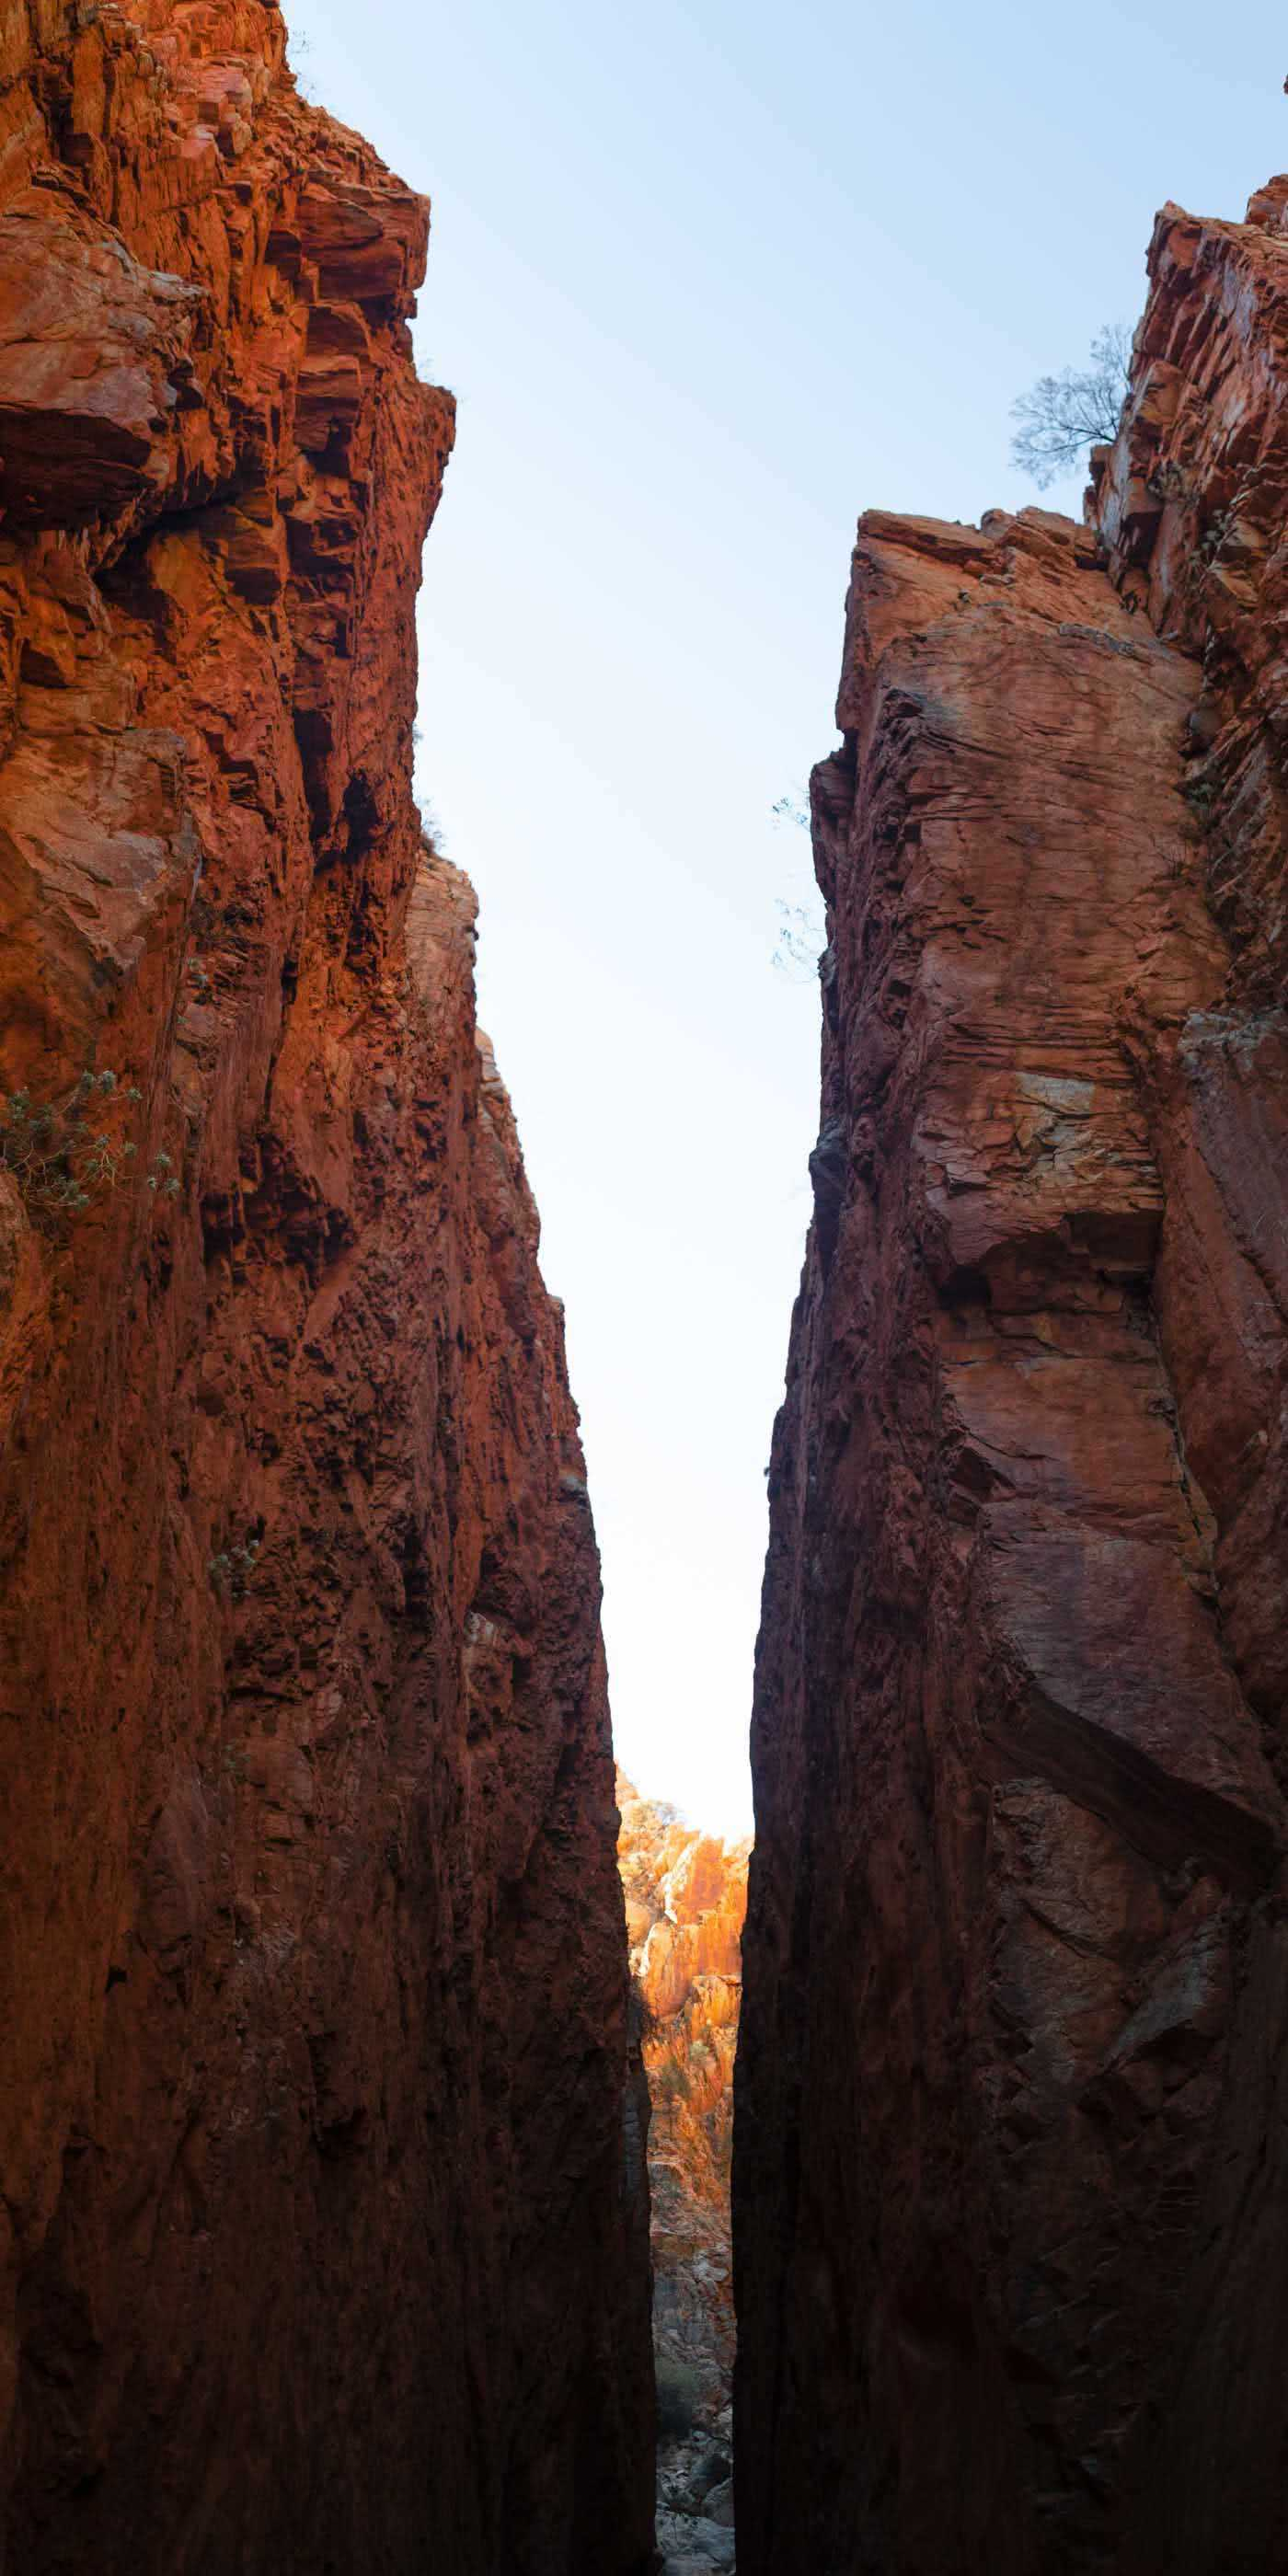 Capturing The Landscapes Of The Larapinta, Conor Moore, photo 11, Standley Chasm, Panorama, cliffs, sky, red rock, sunlight